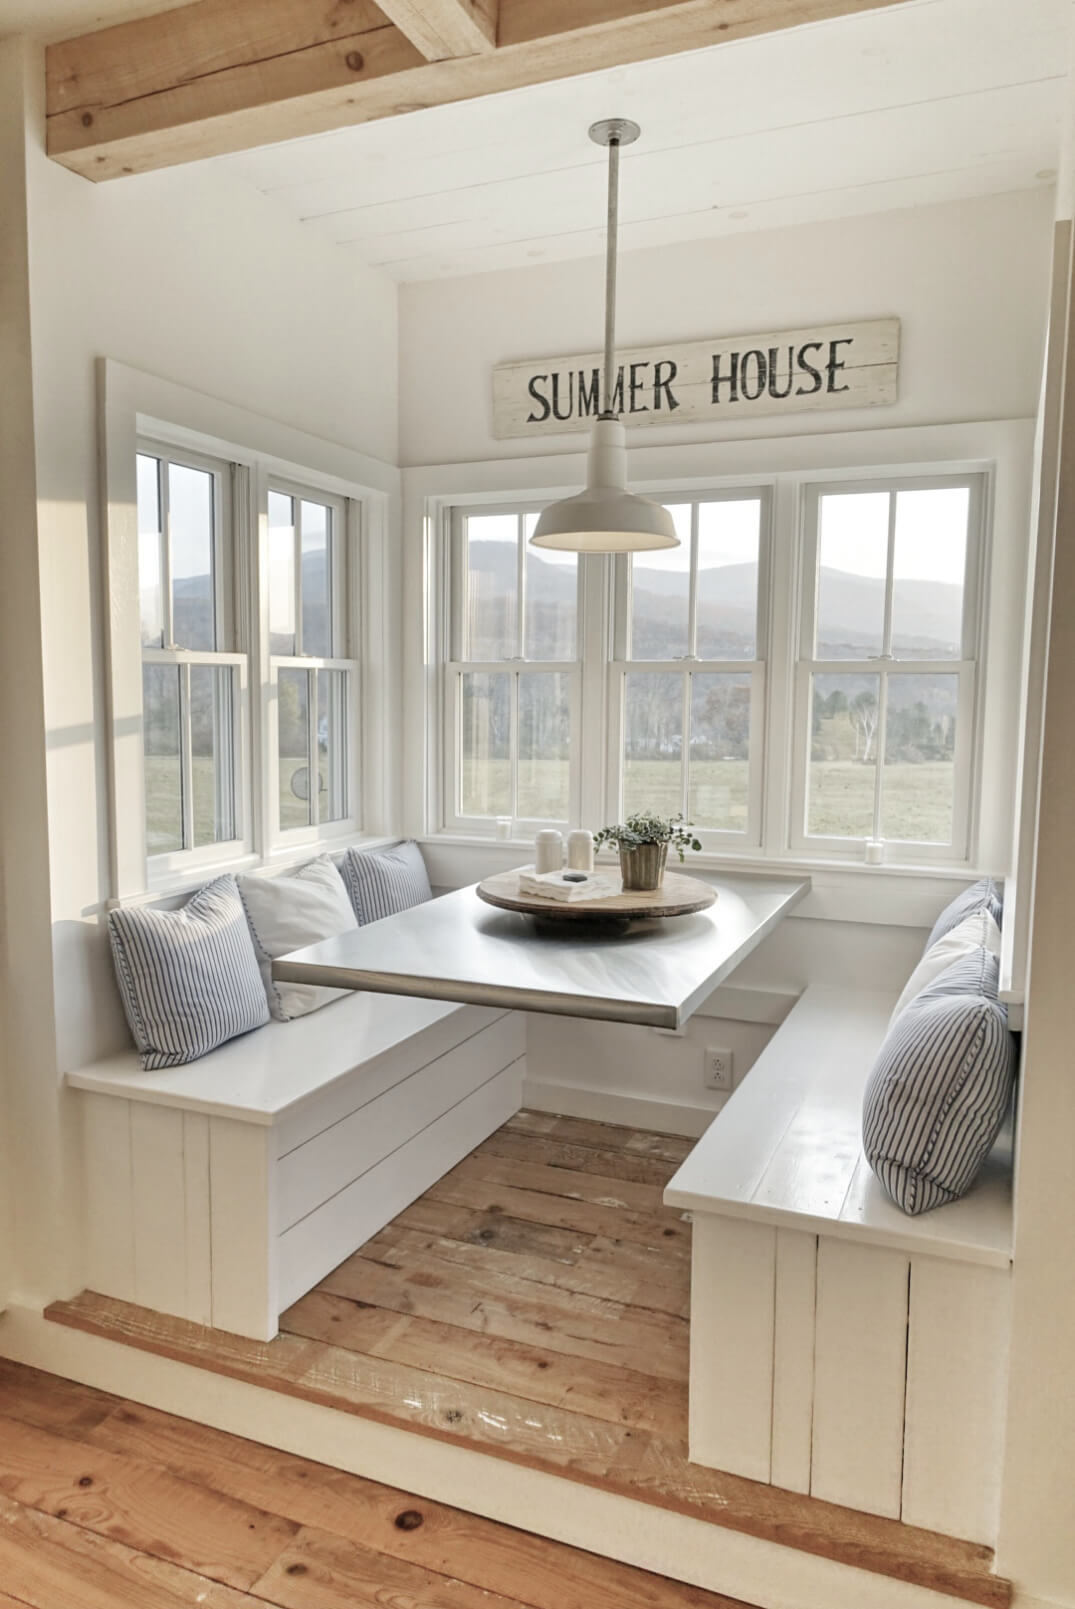 11 a cozy breakfast nook made from wood - Beach House Interior Design Ideas